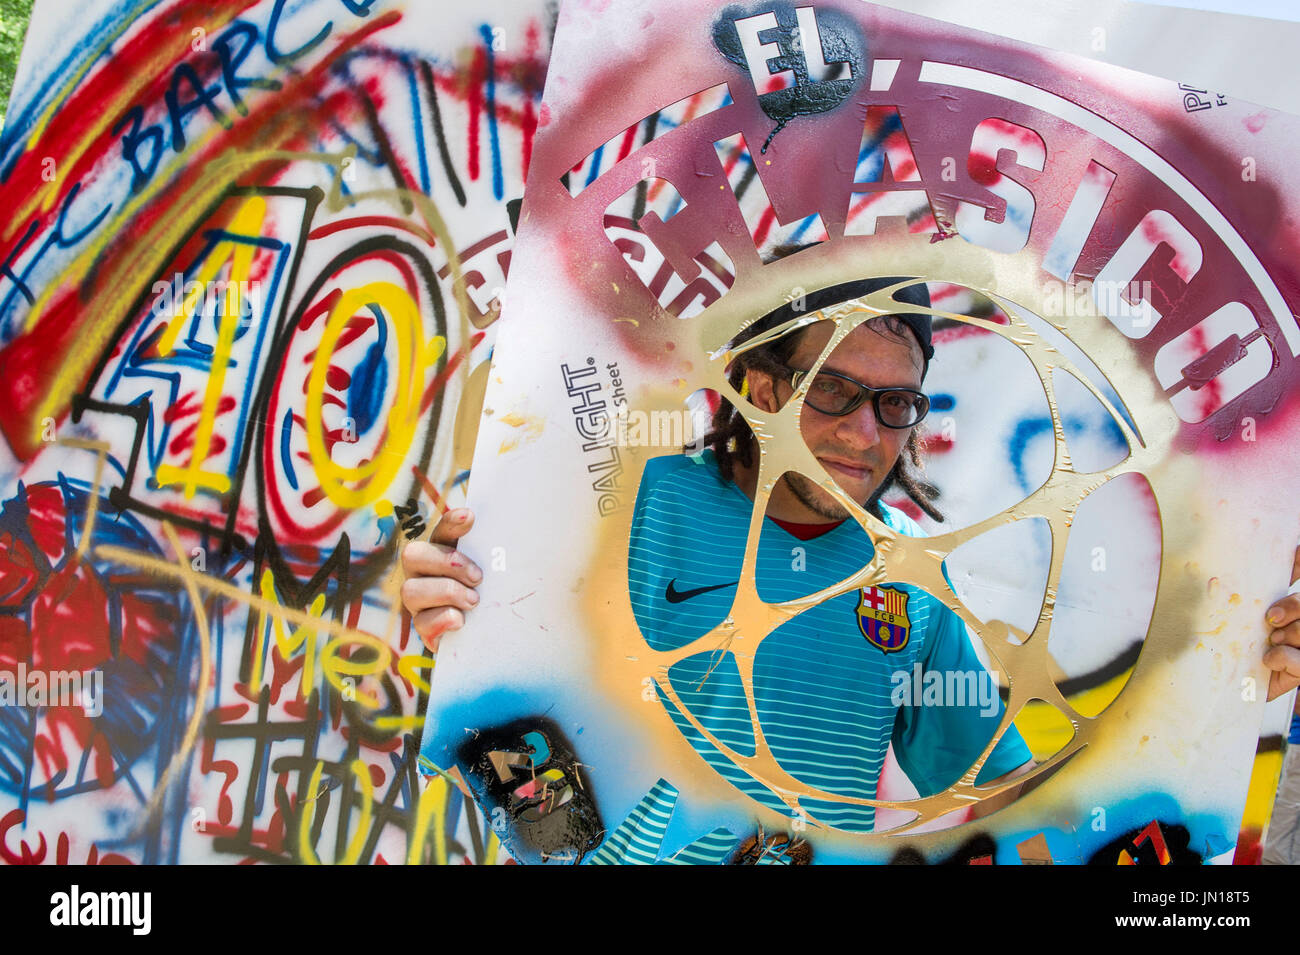 Real Madrid Barcelona Stockfotos & Real Madrid Barcelona Bilder - Alamy